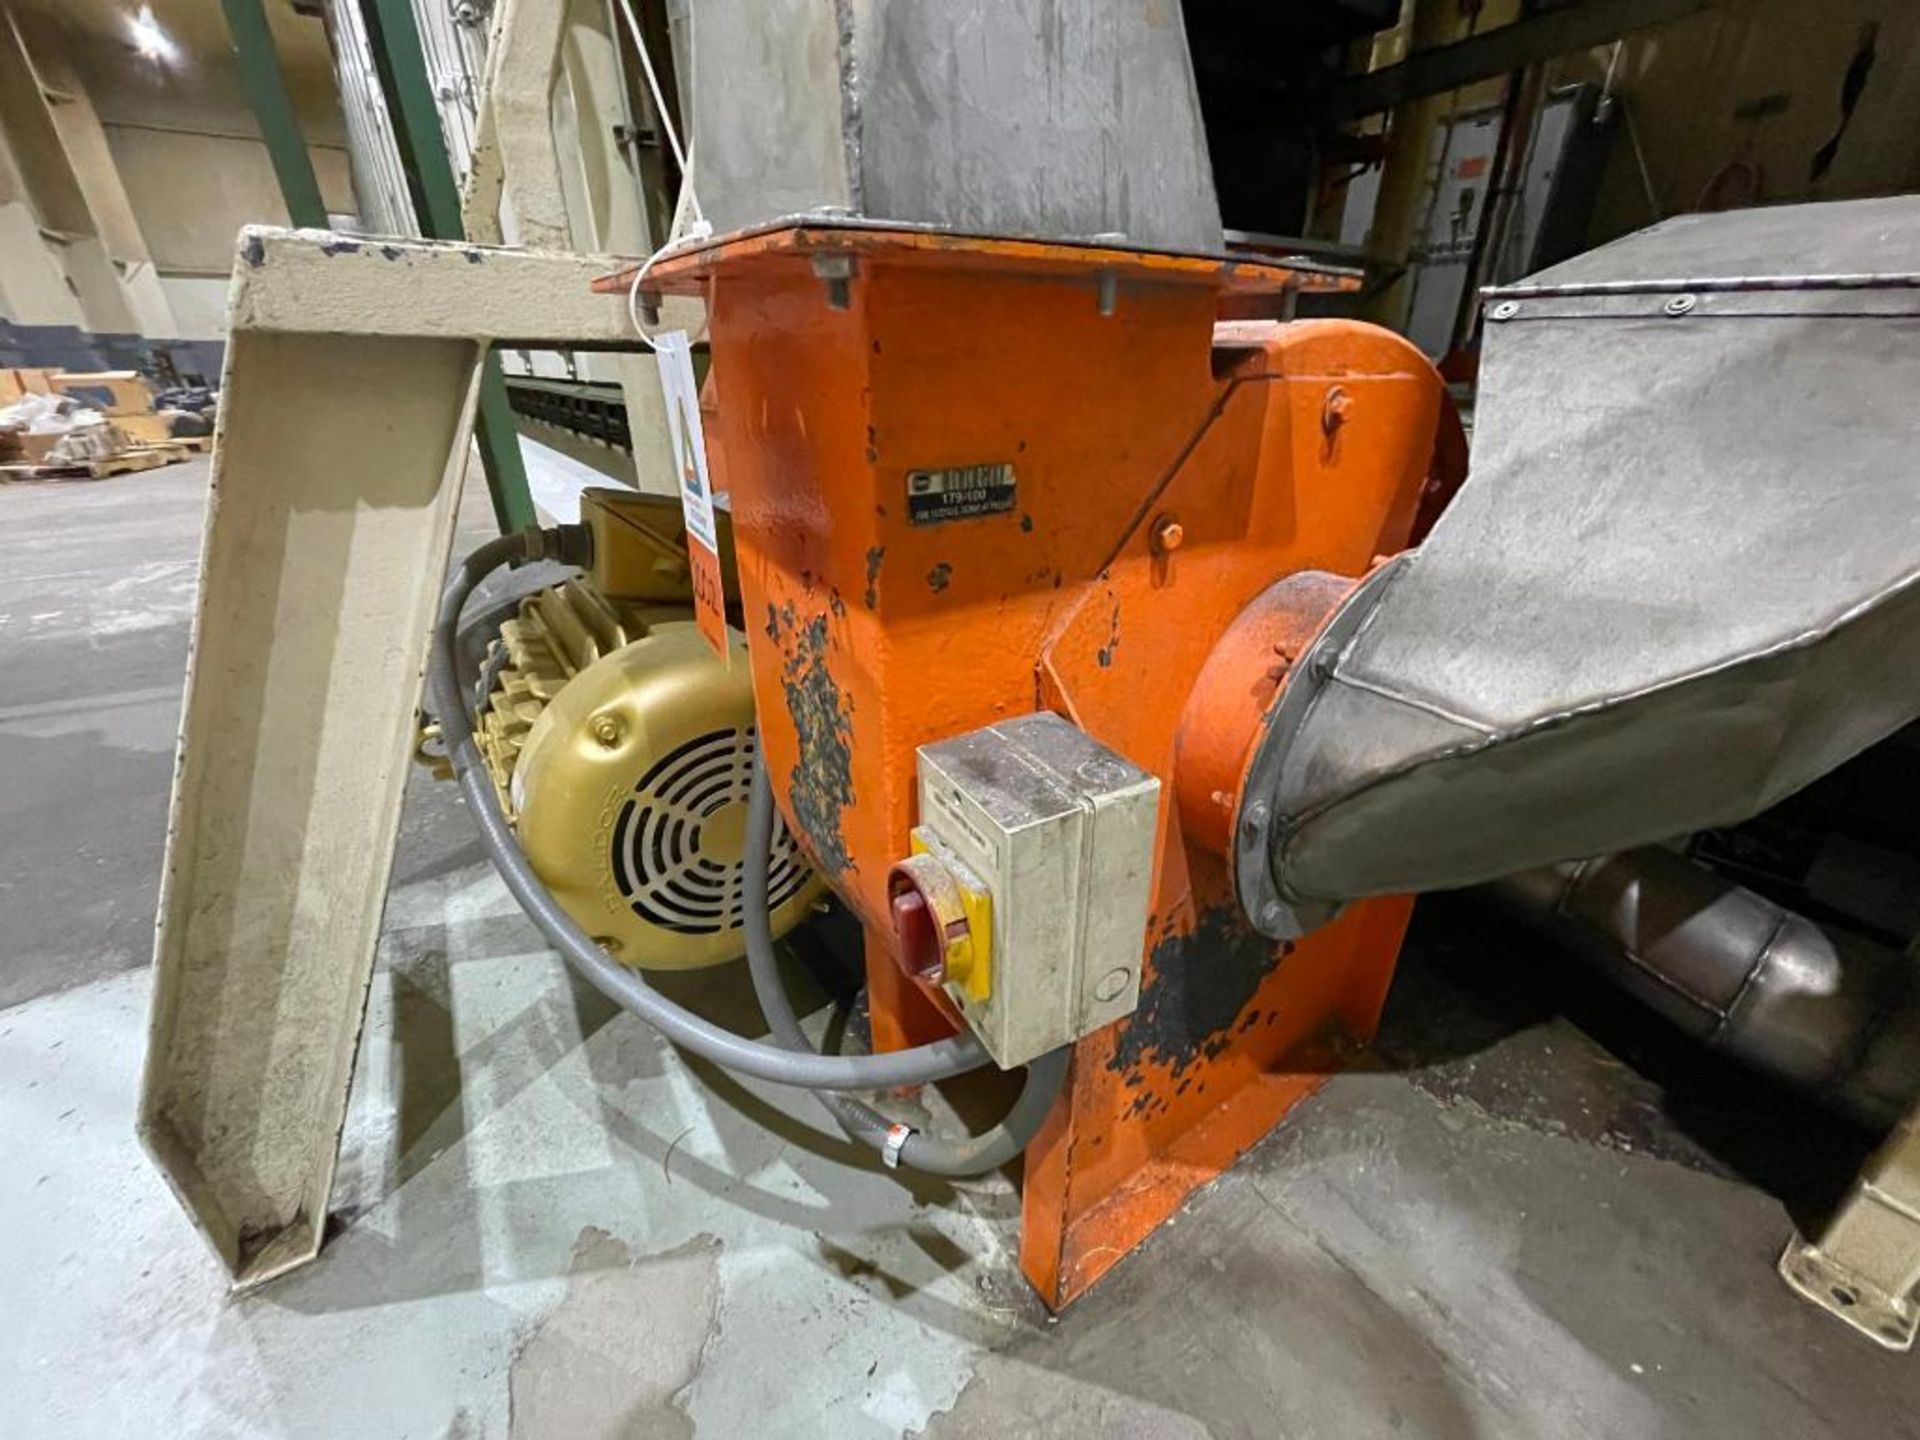 scrap recycle blower - Image 12 of 17